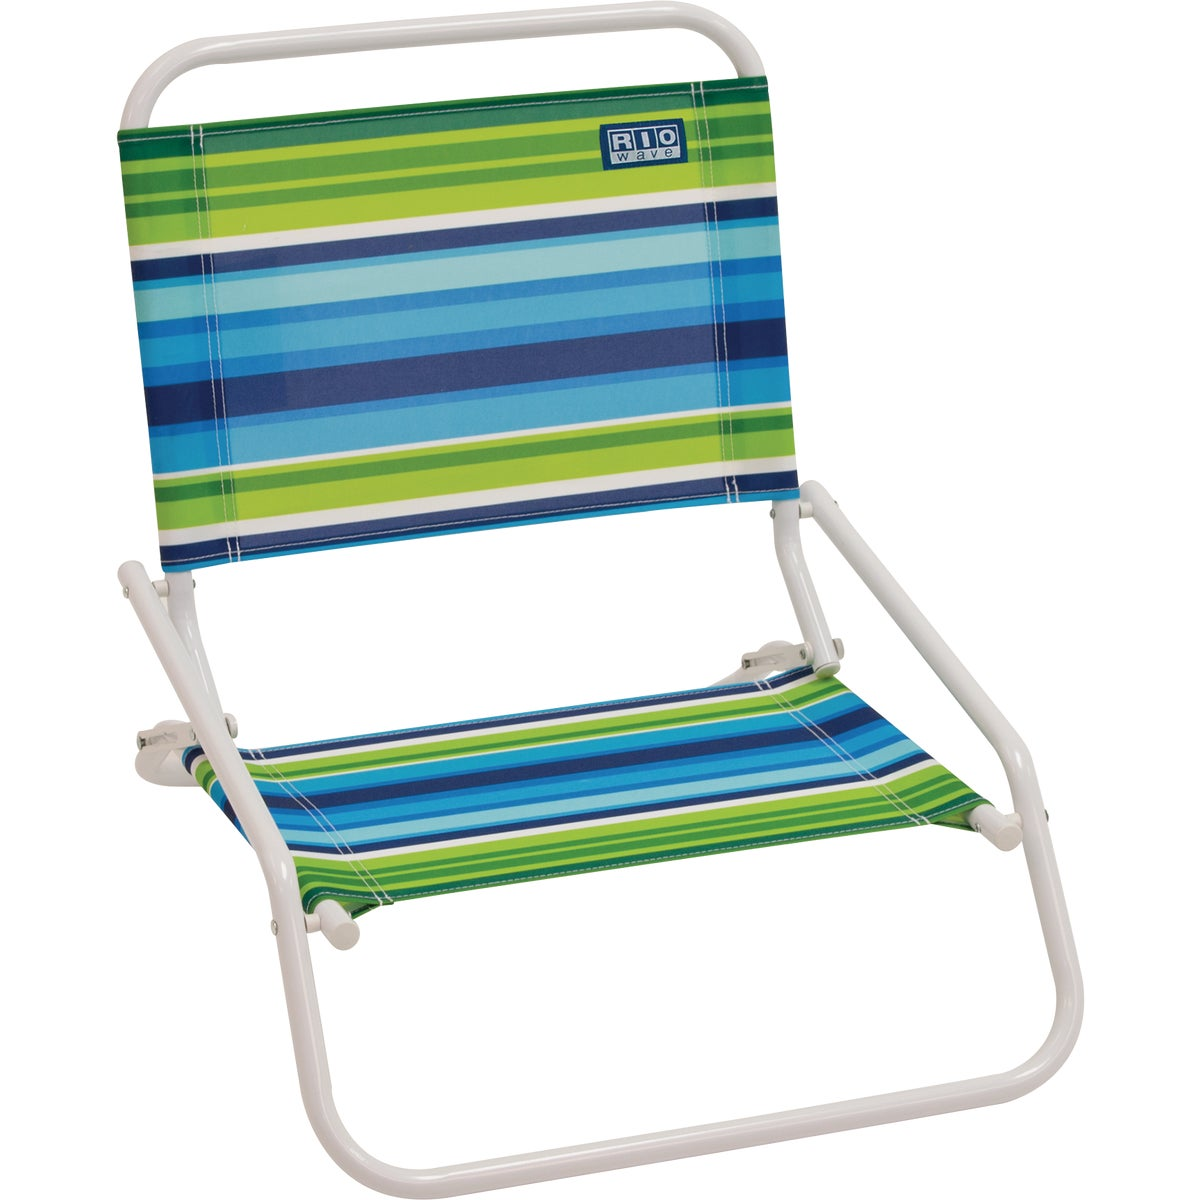 ALOHA BEACH CHAIR - SC580-149 by Rio Brands  Ningbo1